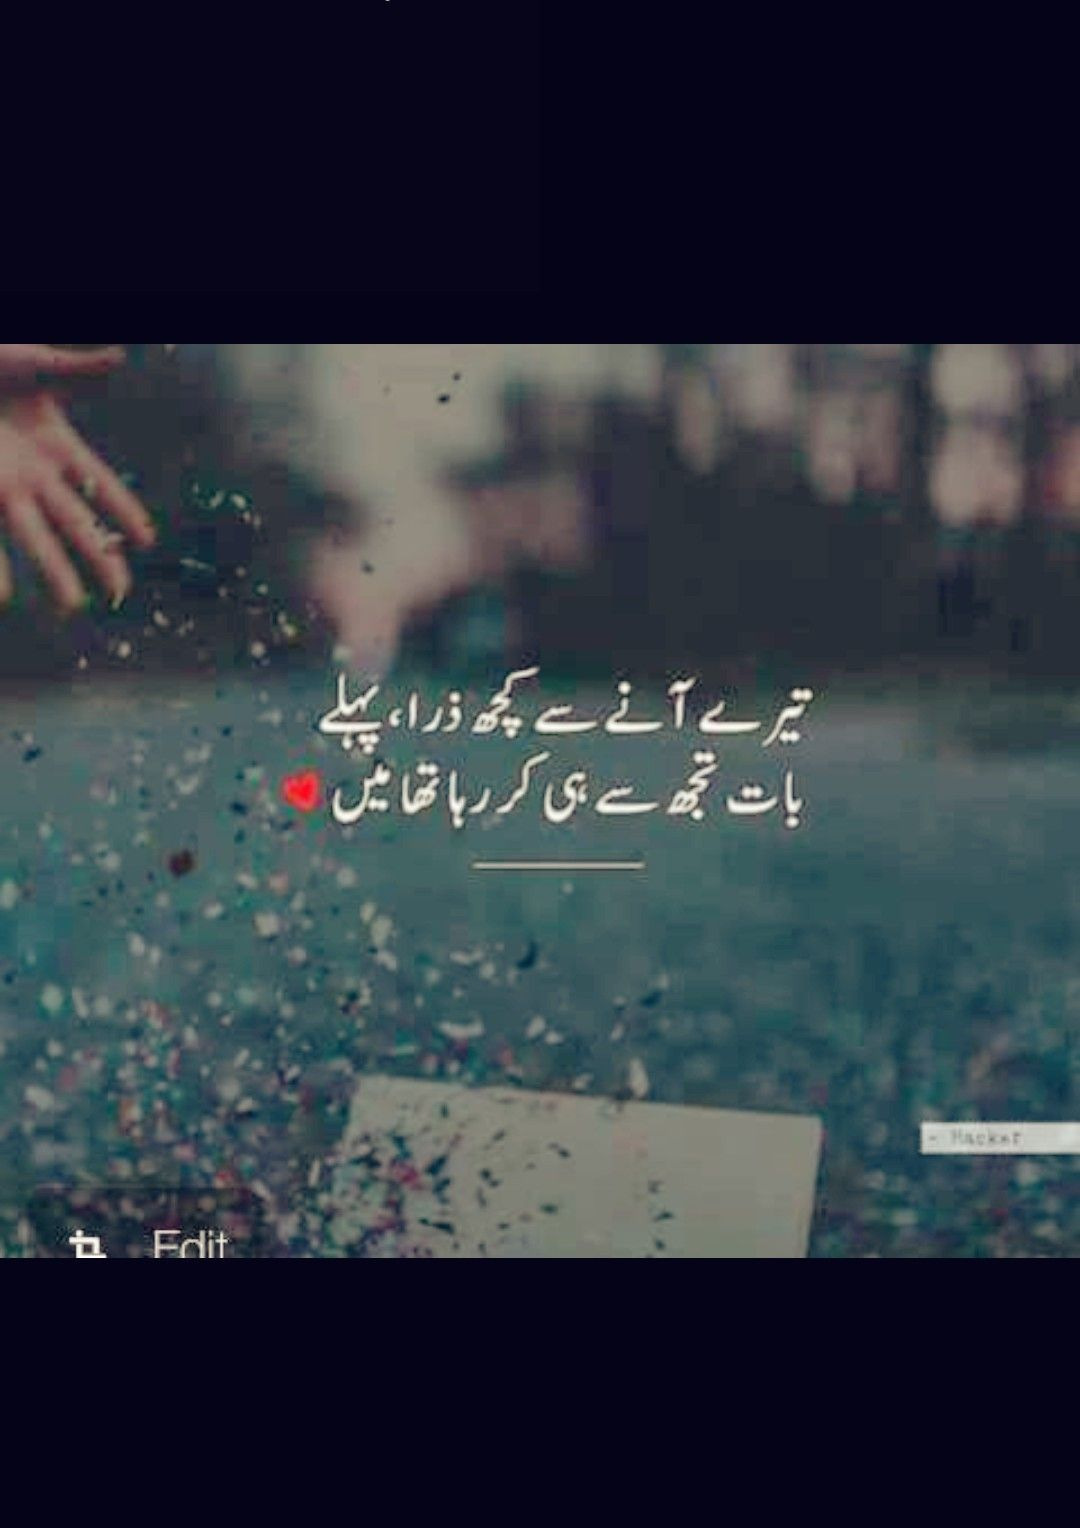 Pin By Saira On Urdu Sad Poetry And Quotes Collection Pinterest